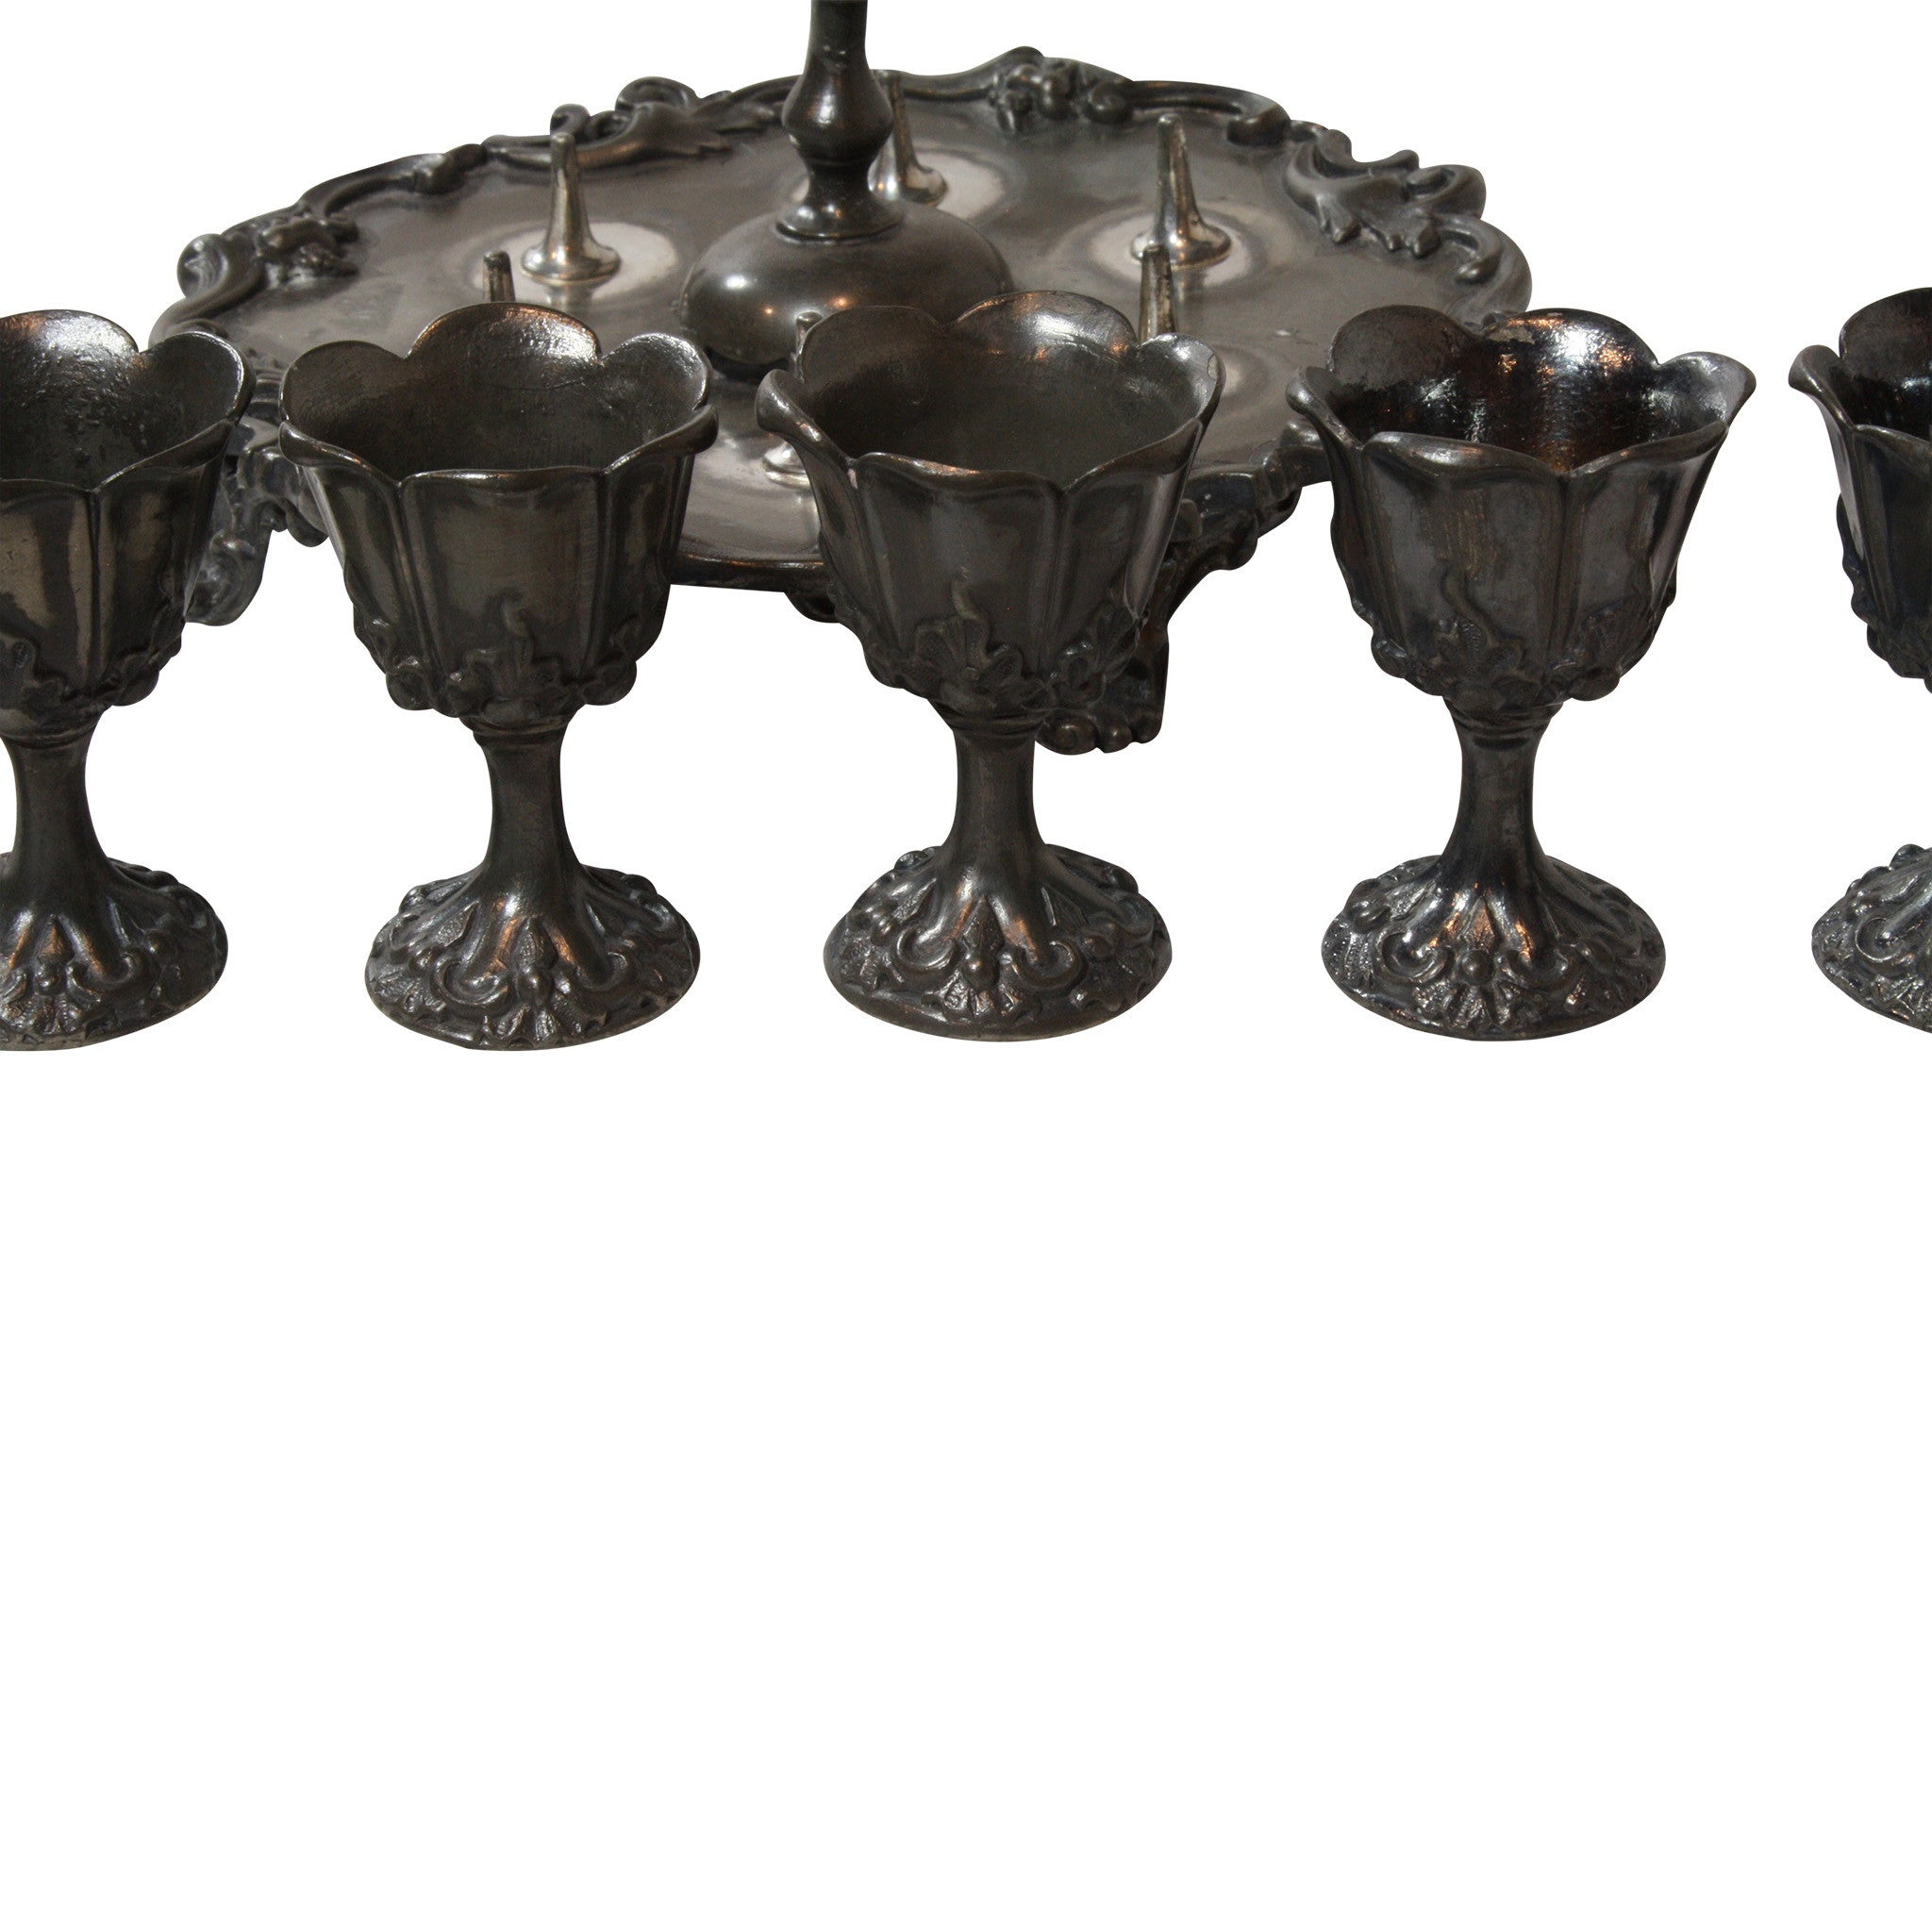 Pewter Egg Cup Set